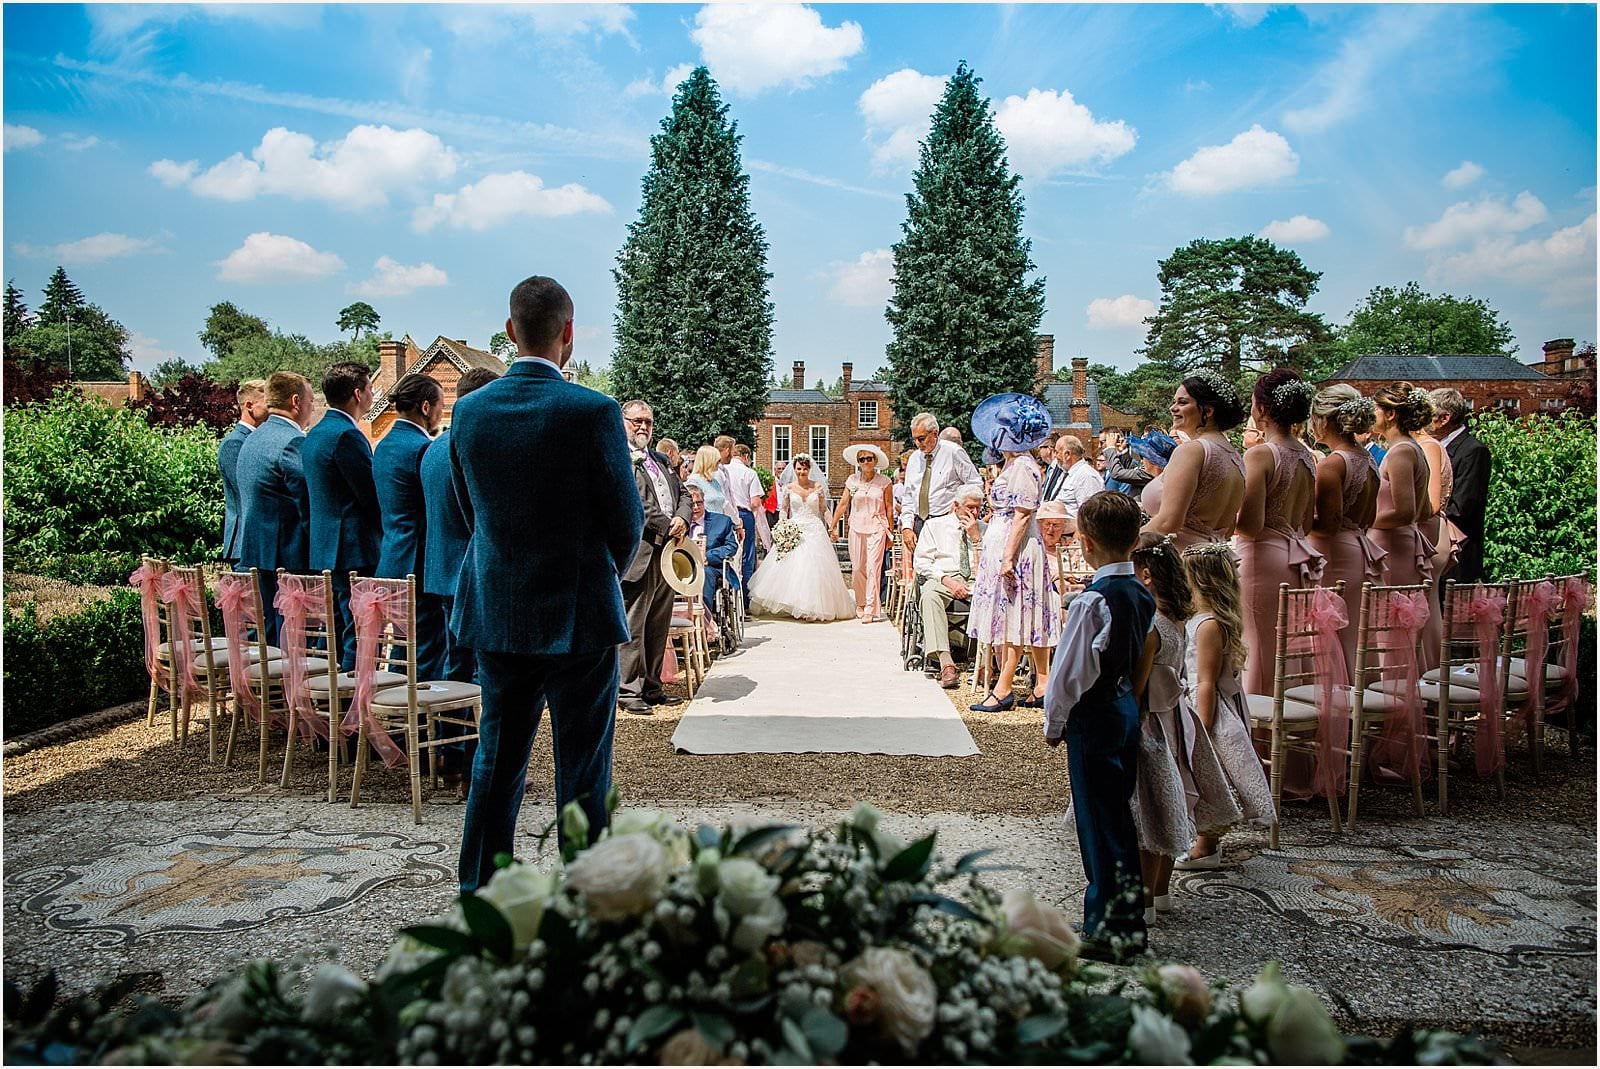 Wotton House Wedding - Justine + Rob's stunning wedding 23